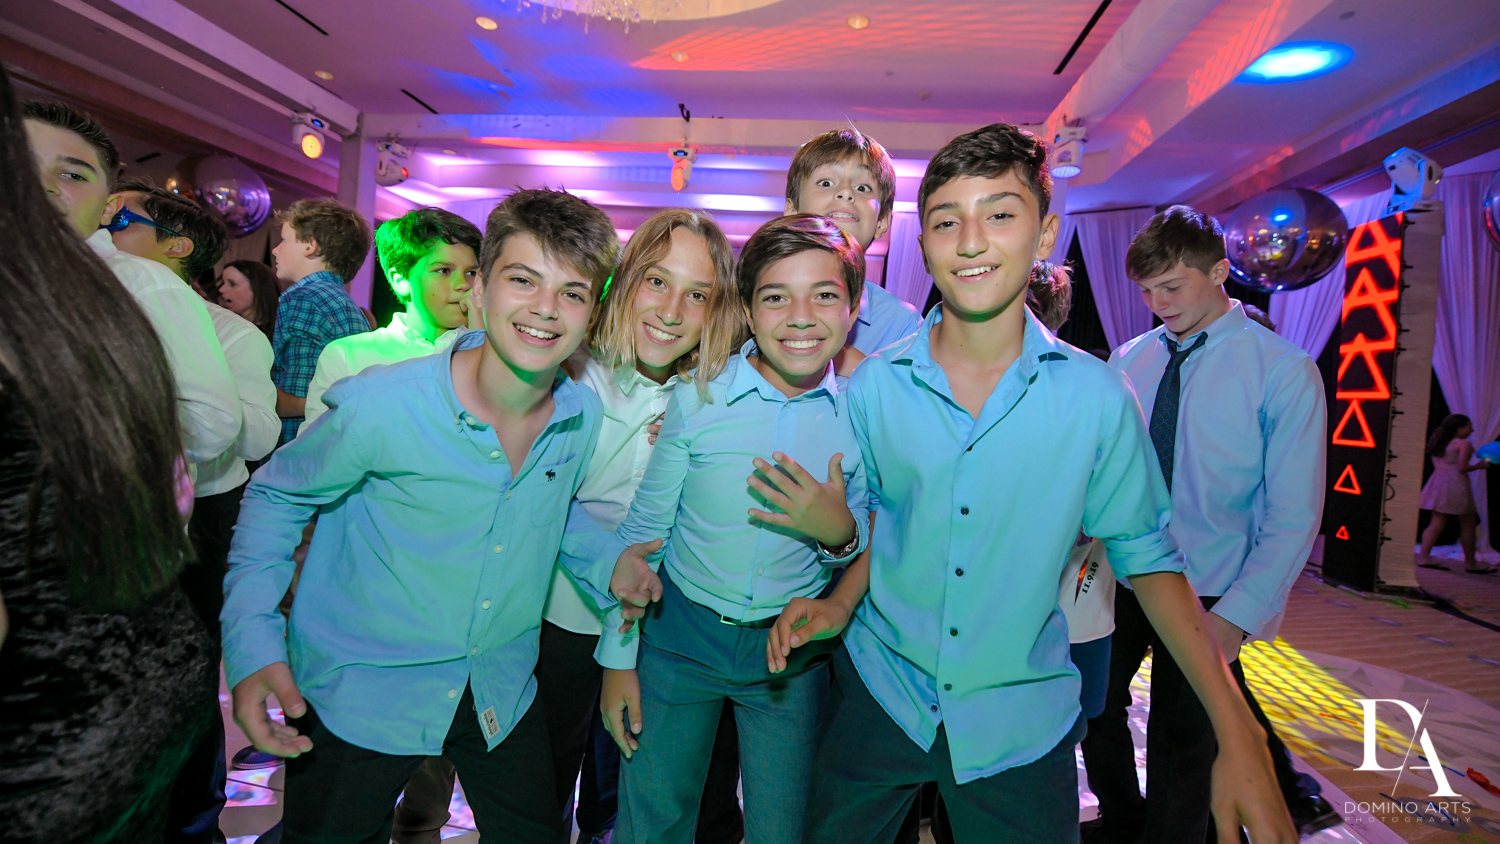 kids at Masquerade Ball Bat Mitzvah at Ritz Carlton Fort Lauderdale by Domino Arts Photography